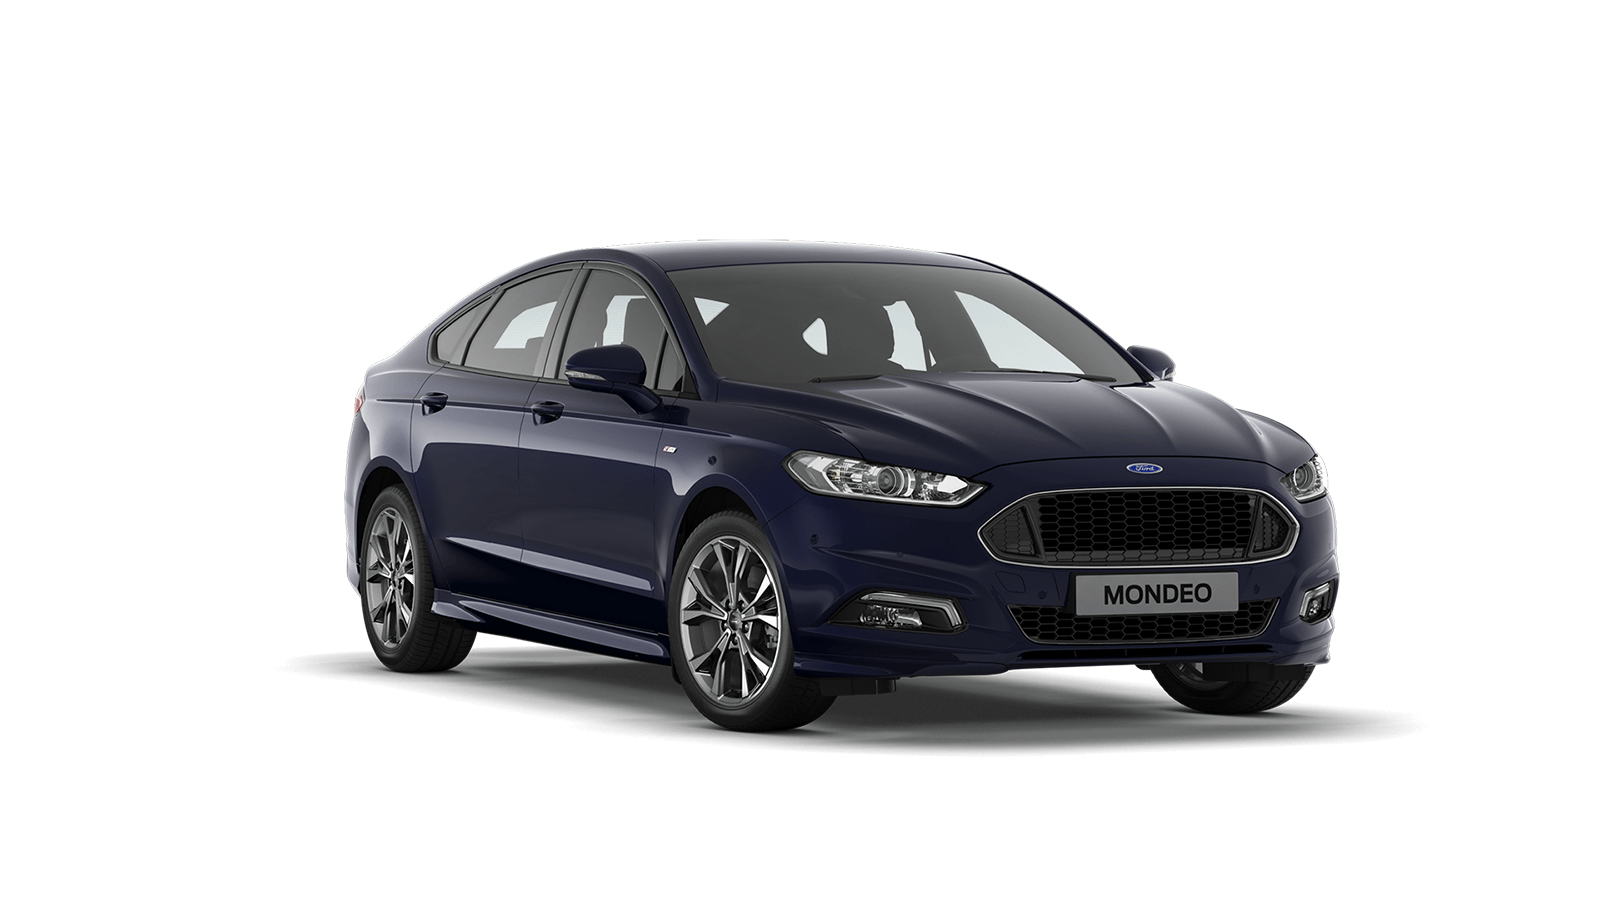 ford mondeo mf autoloc. Black Bedroom Furniture Sets. Home Design Ideas